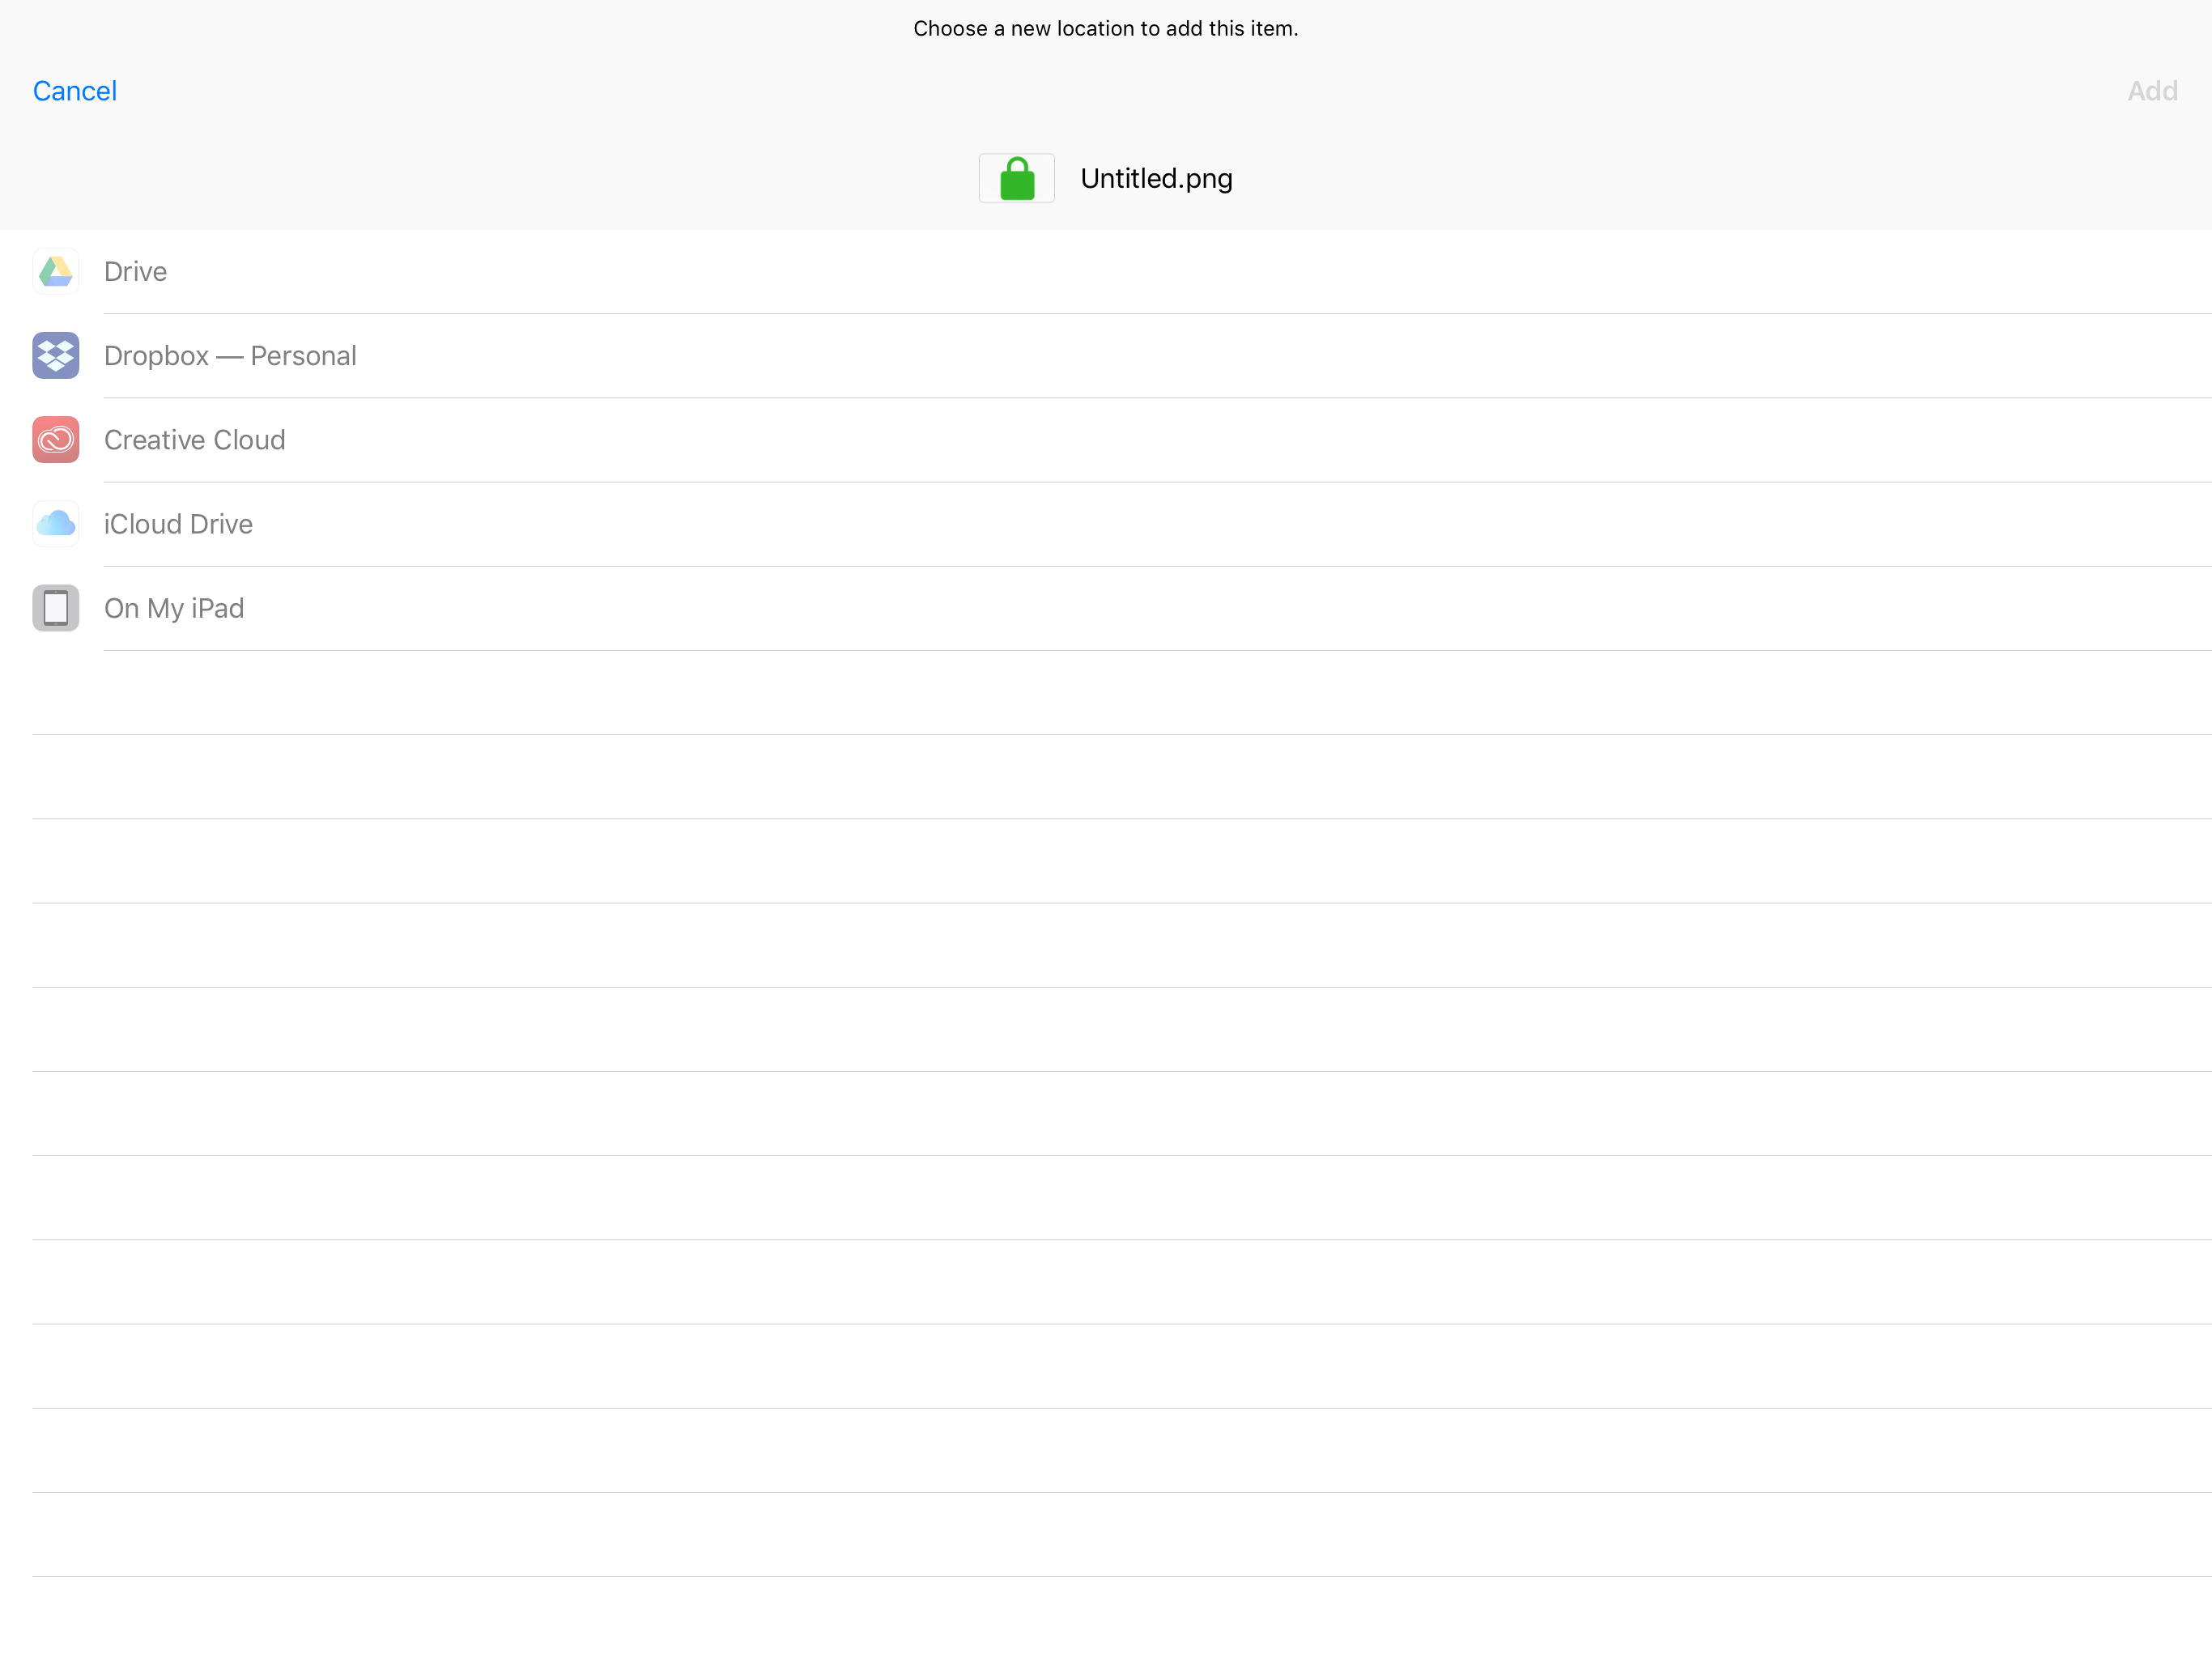 Save/Export Locations Greyed Out - Affinity on iPad